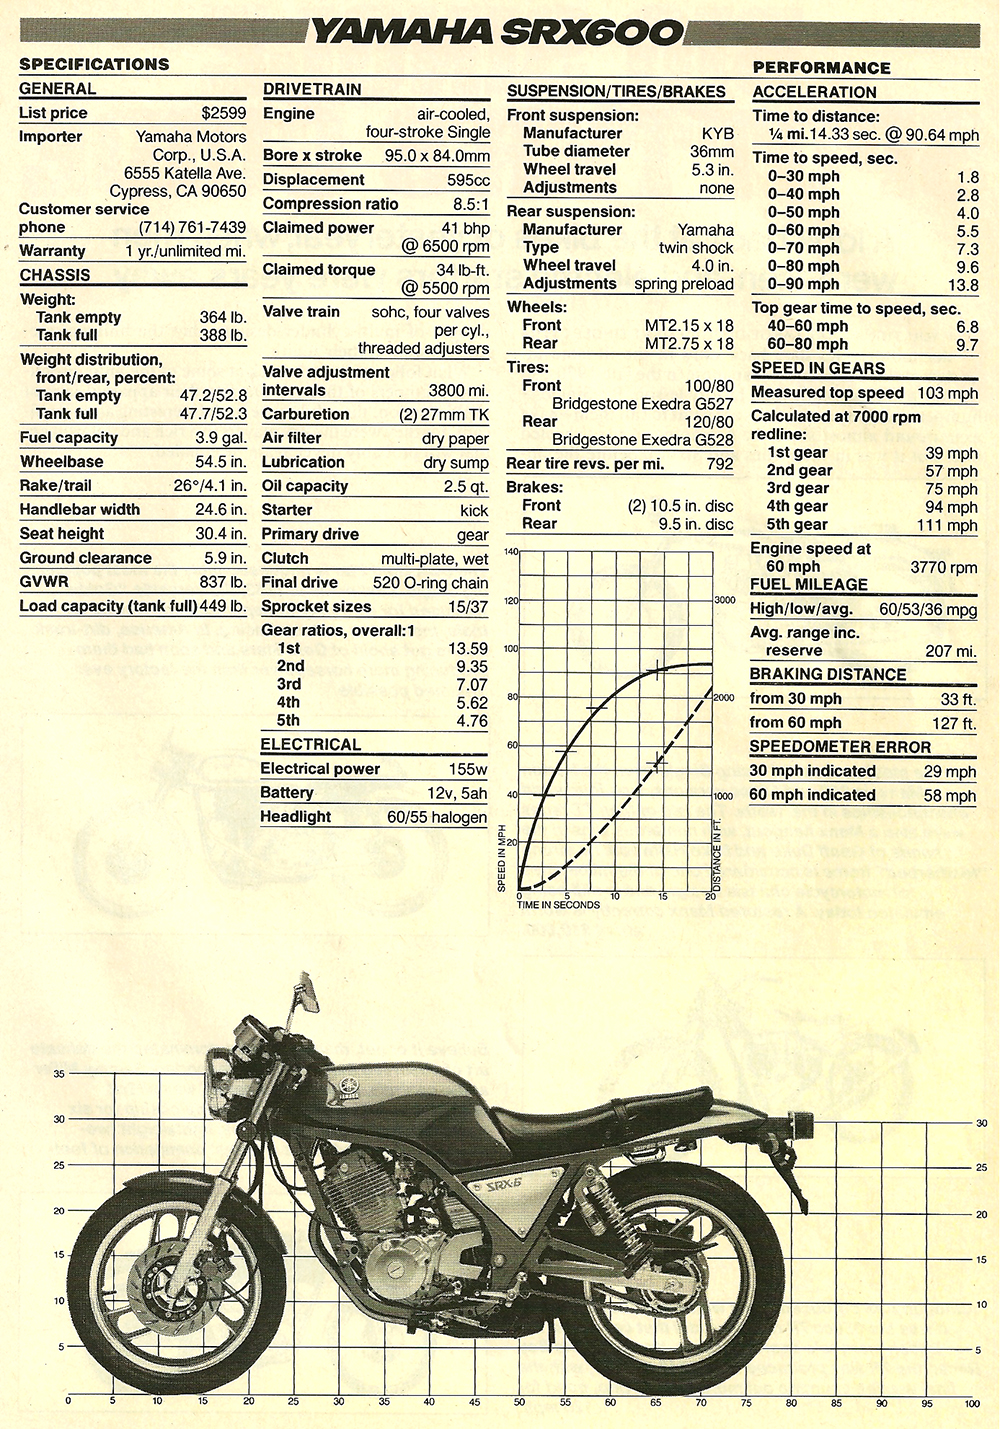 1986 Yamaha SRX600 road test 06.jpg